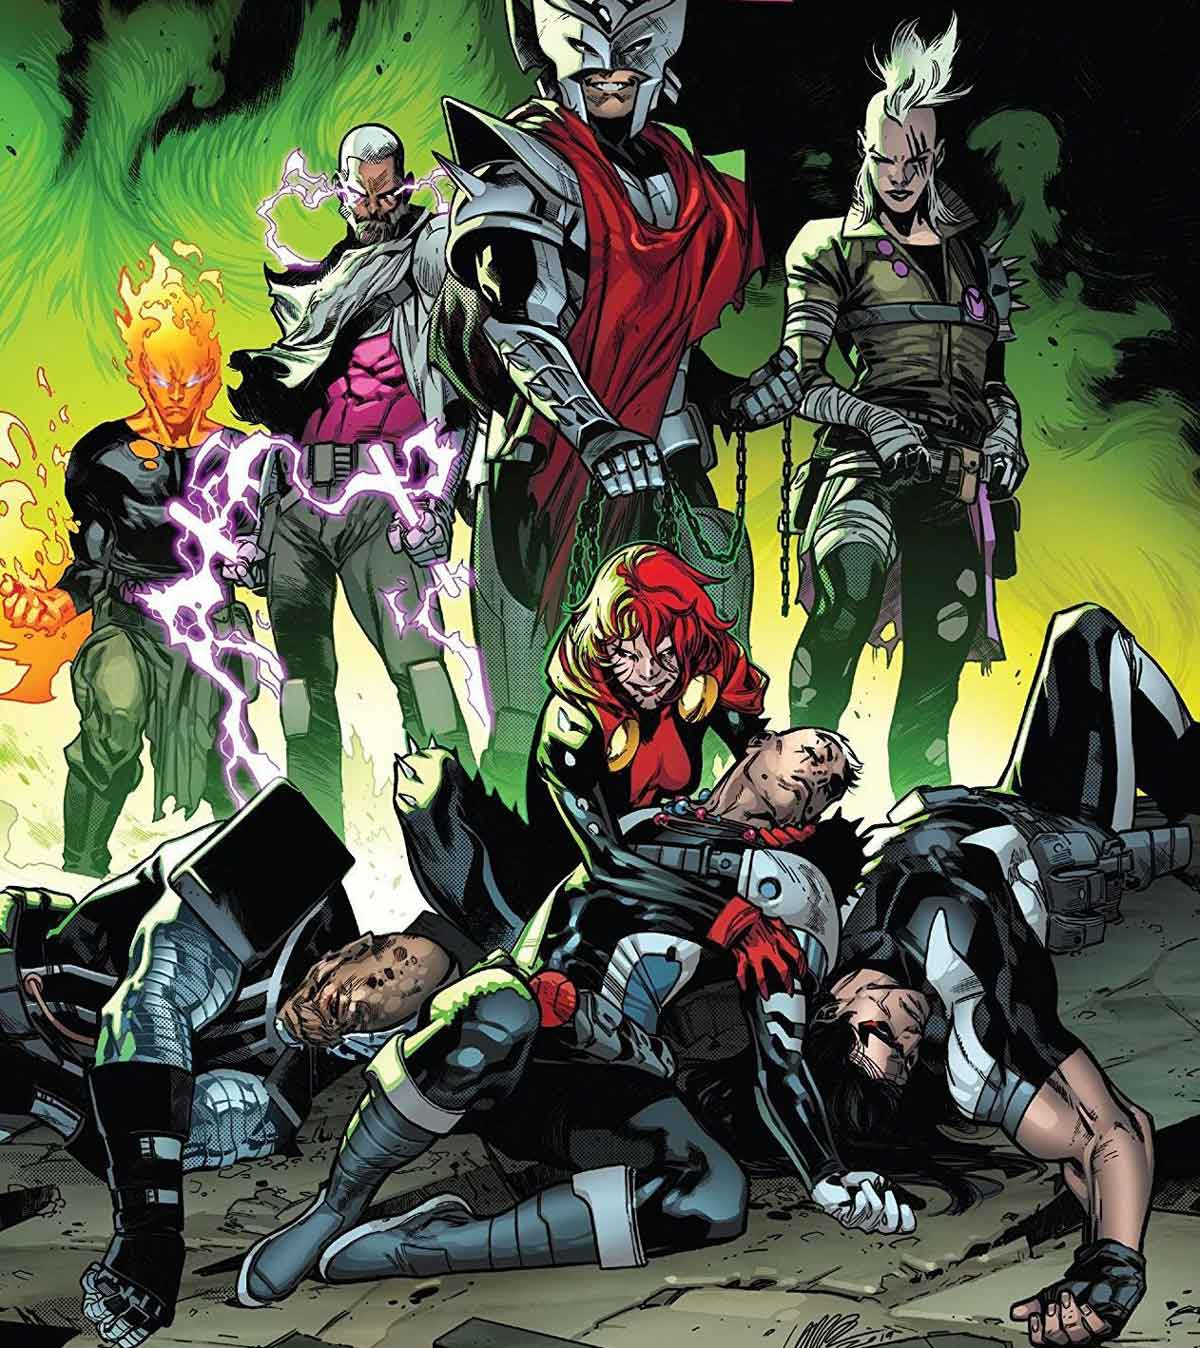 Reseña de X force 4 y 5 de Marvel Comics